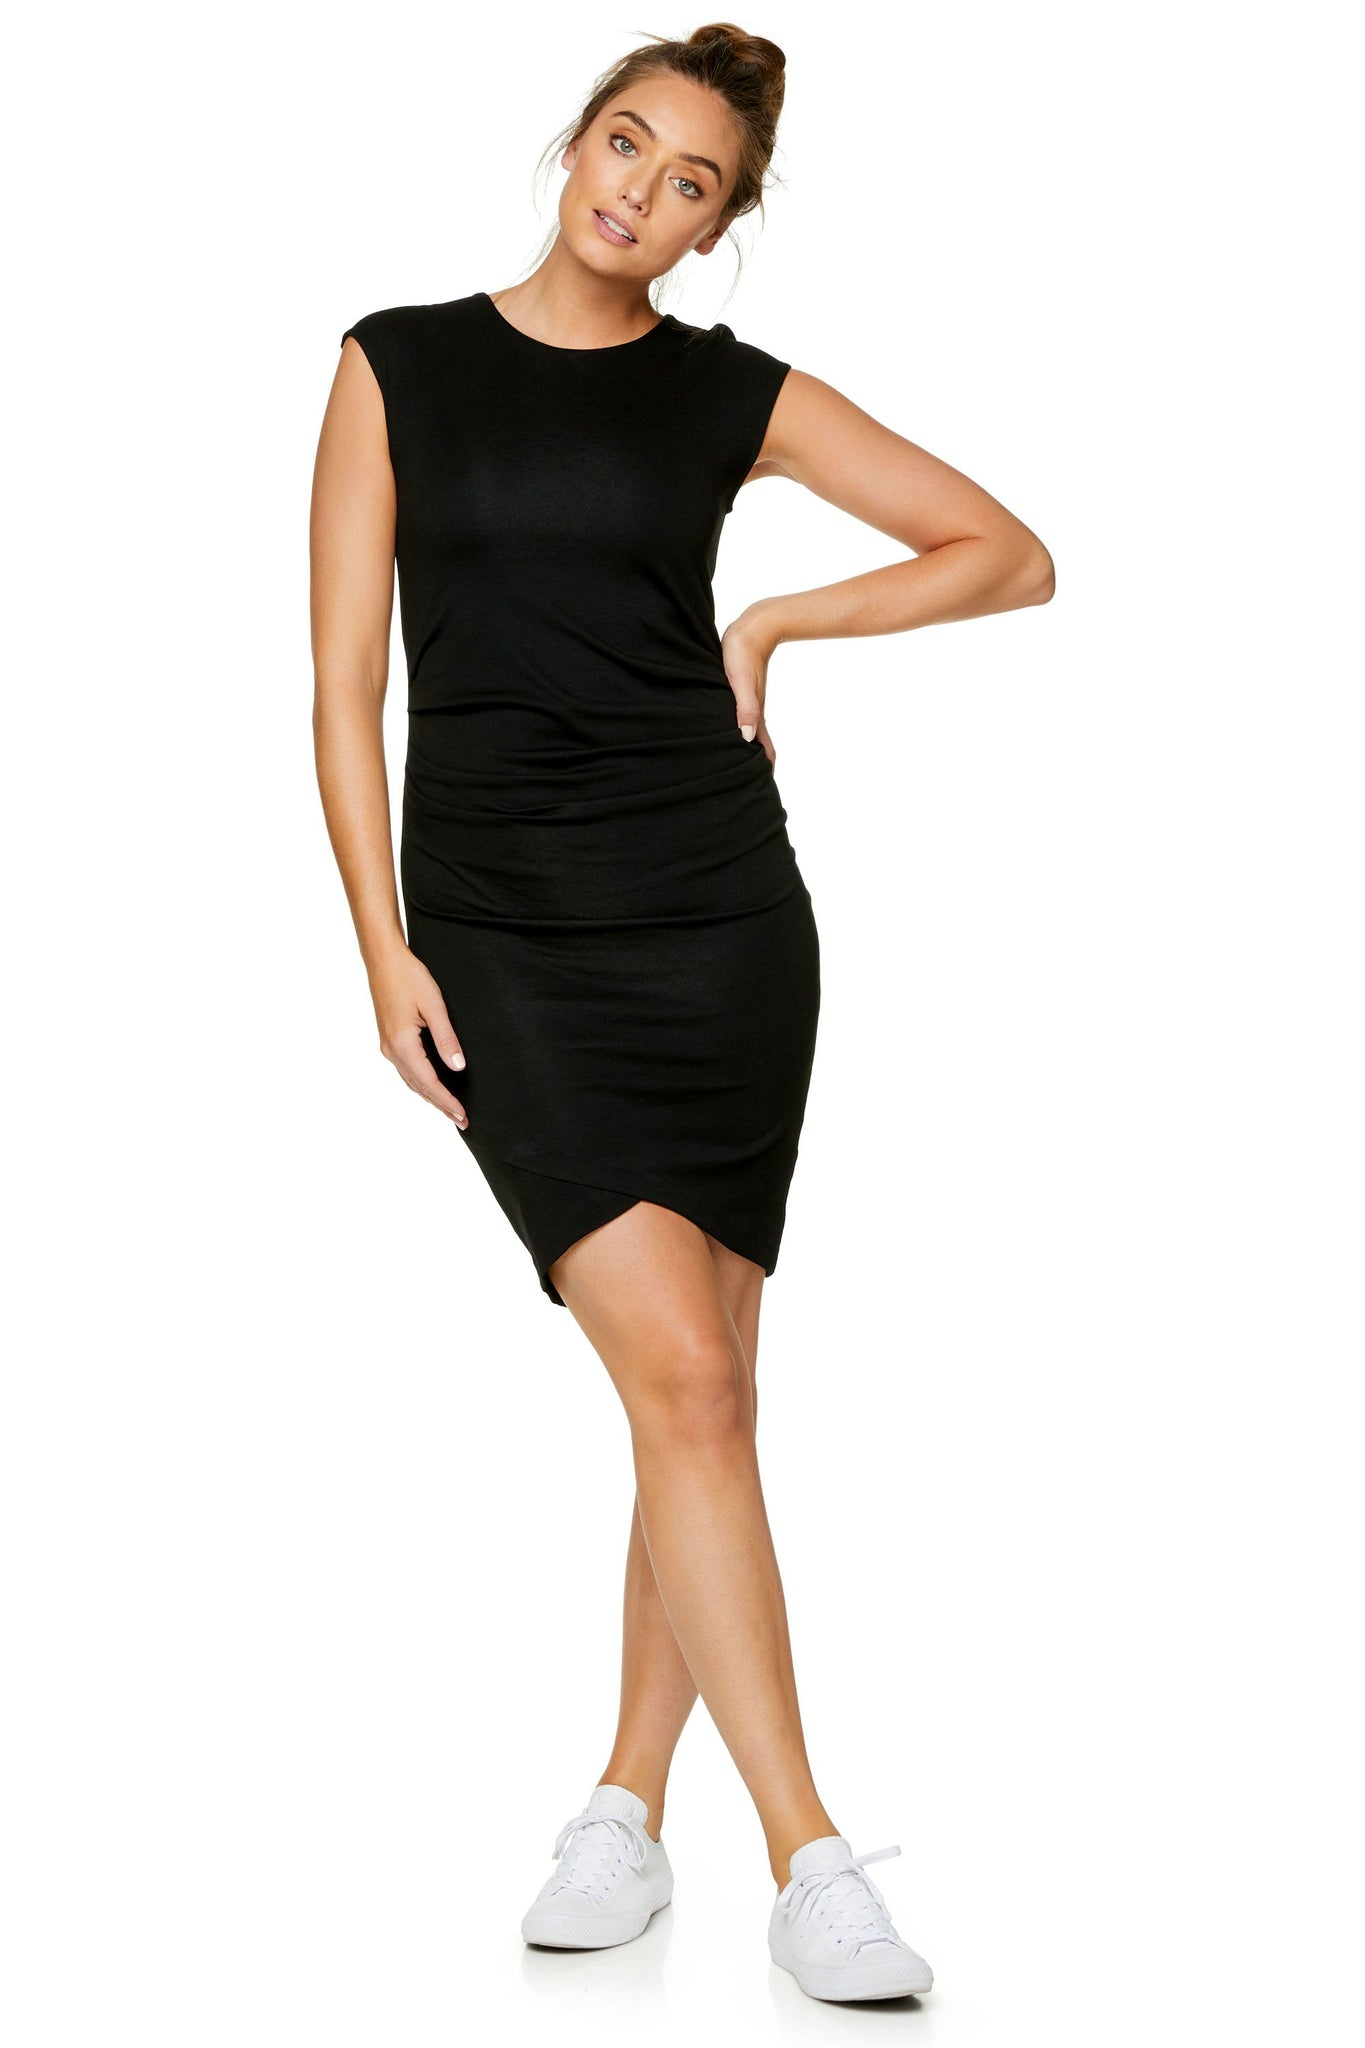 Black Maternity Dress - Formal Maternity Dress 7